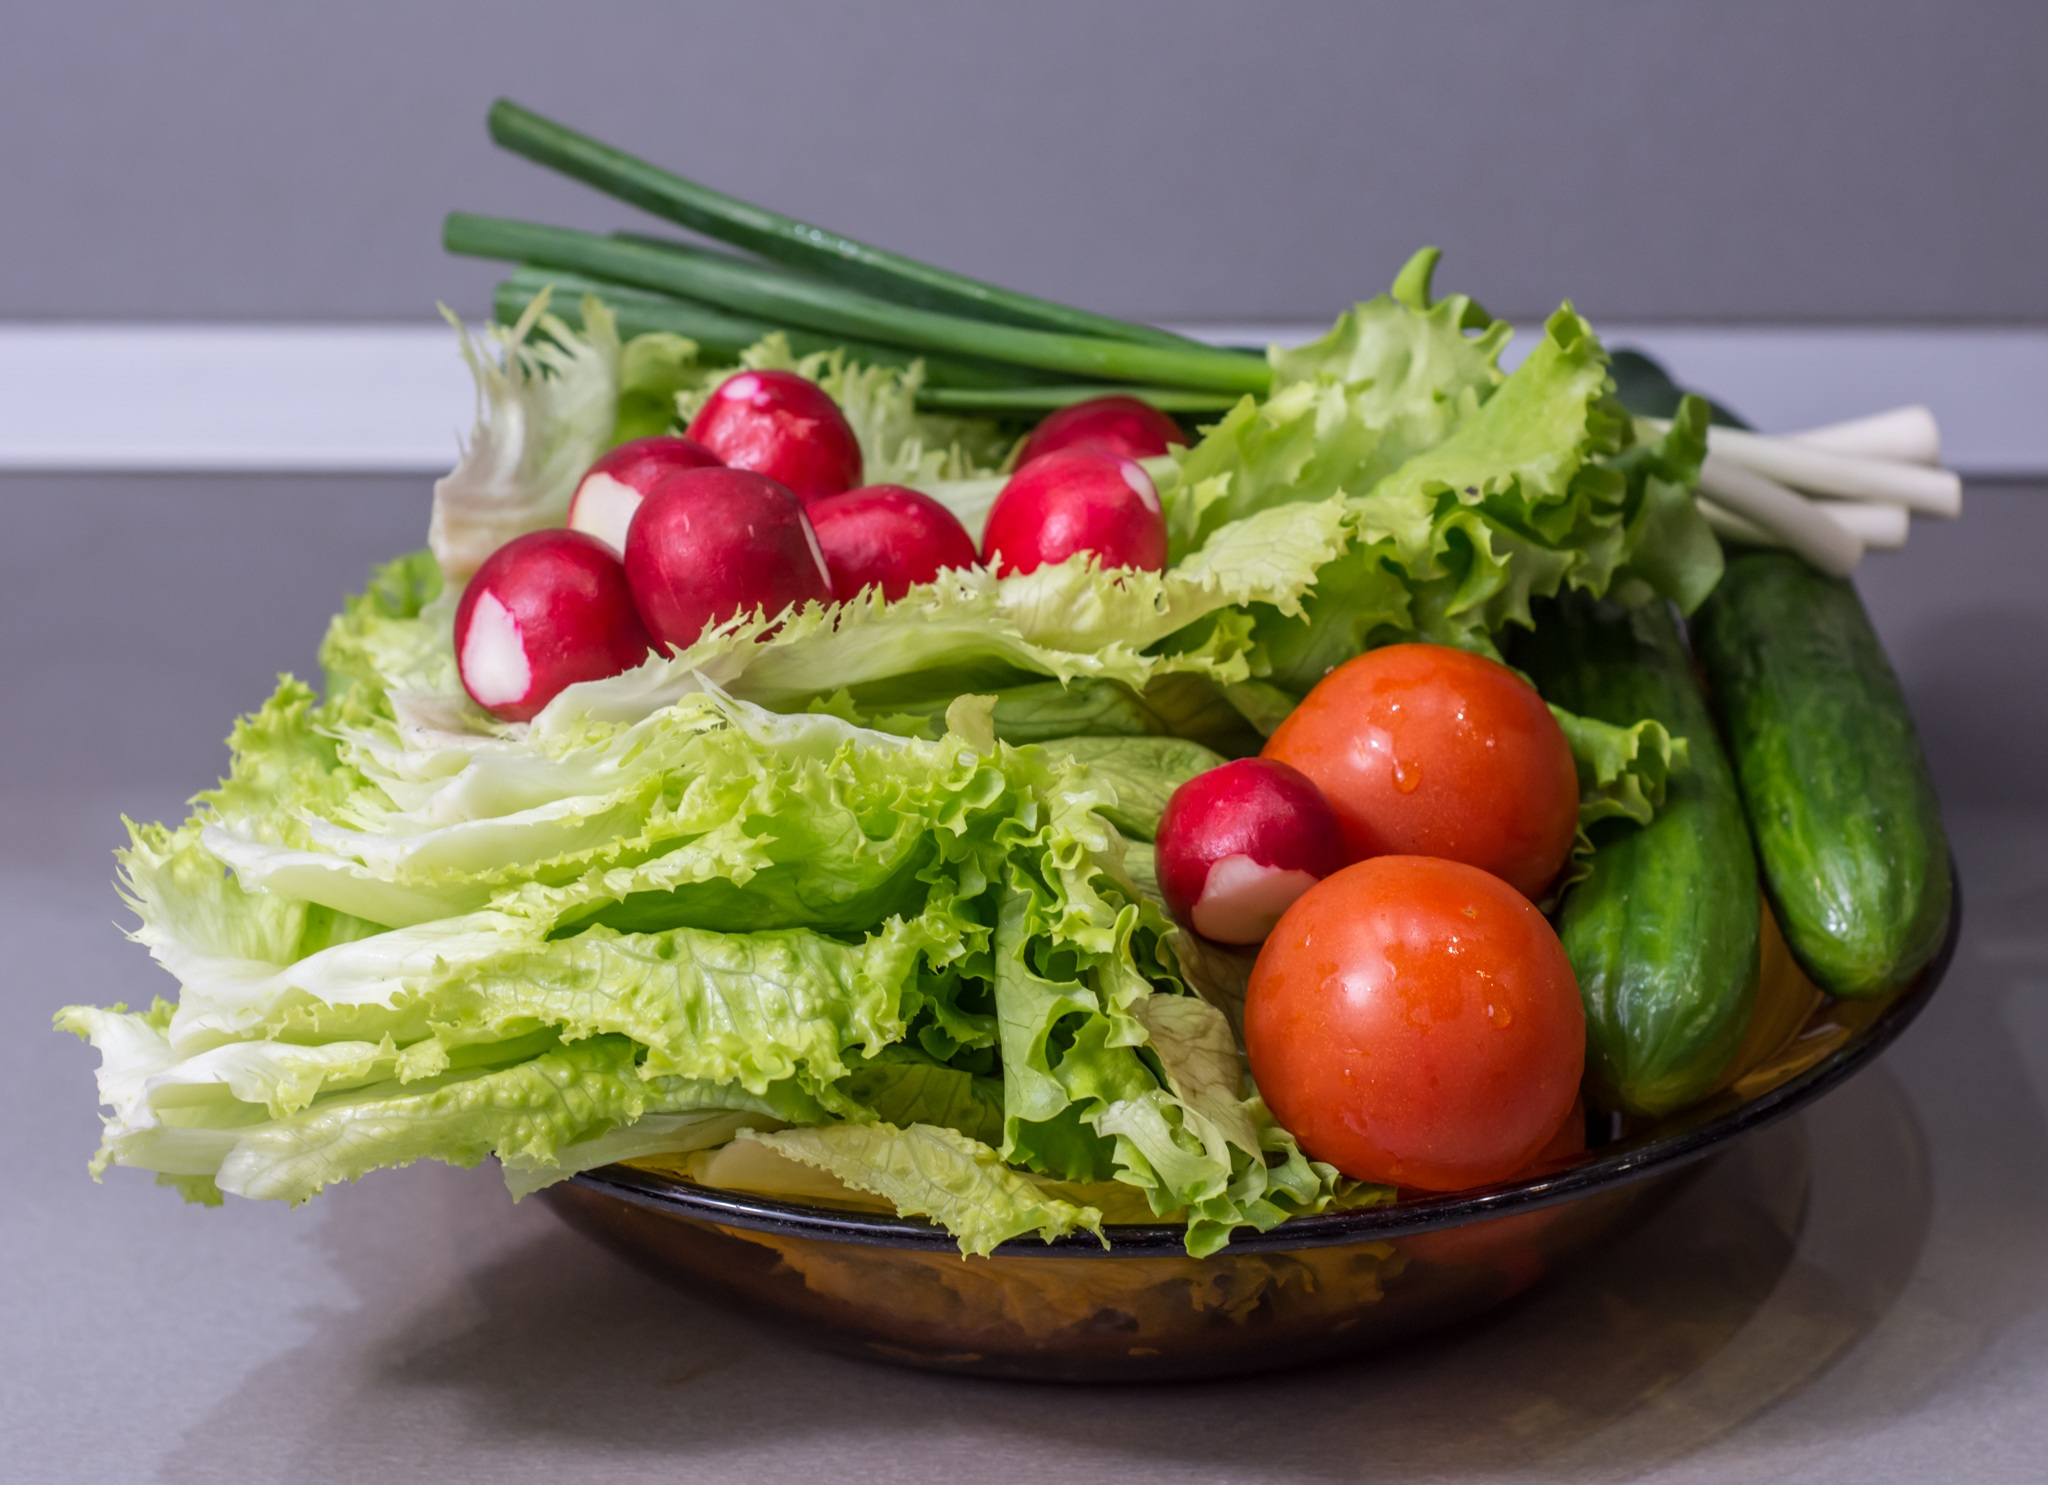 Many of us shortchange ourselves on the amount of vegetables we should consume daily, which averages about 3 cups per day for most adults. (Photo courtesy of Pixabay)